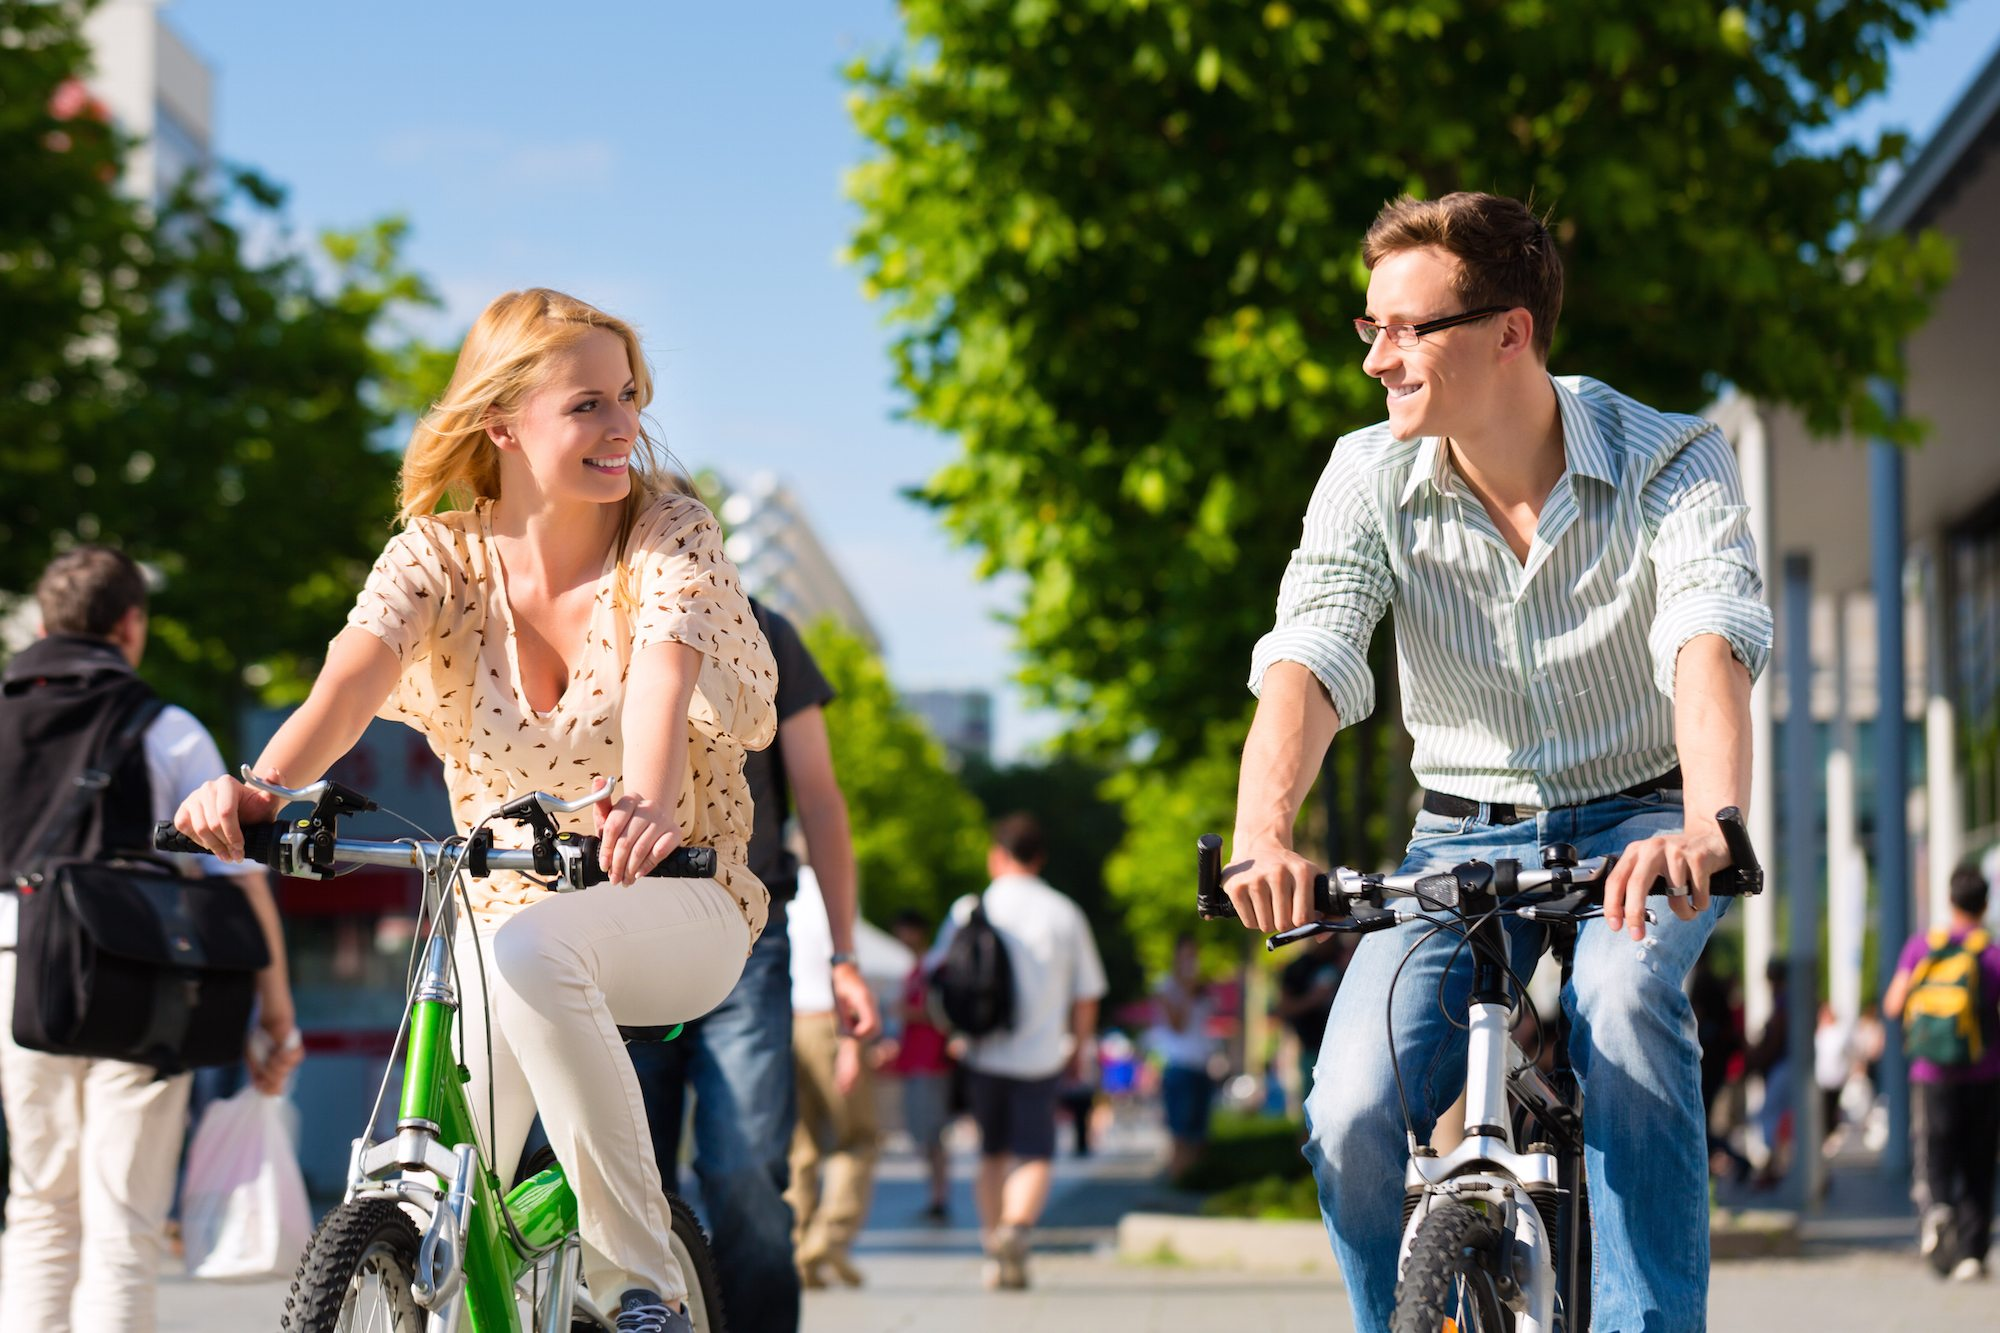 http://drivethenation.com/wp-content/uploads/2015/04/Bigstock-46026116-Couple-man-and-woman-riding-their-bikes-or-bicycles-in-their-free-time-and-having-fun-on-a-sunny.jpg